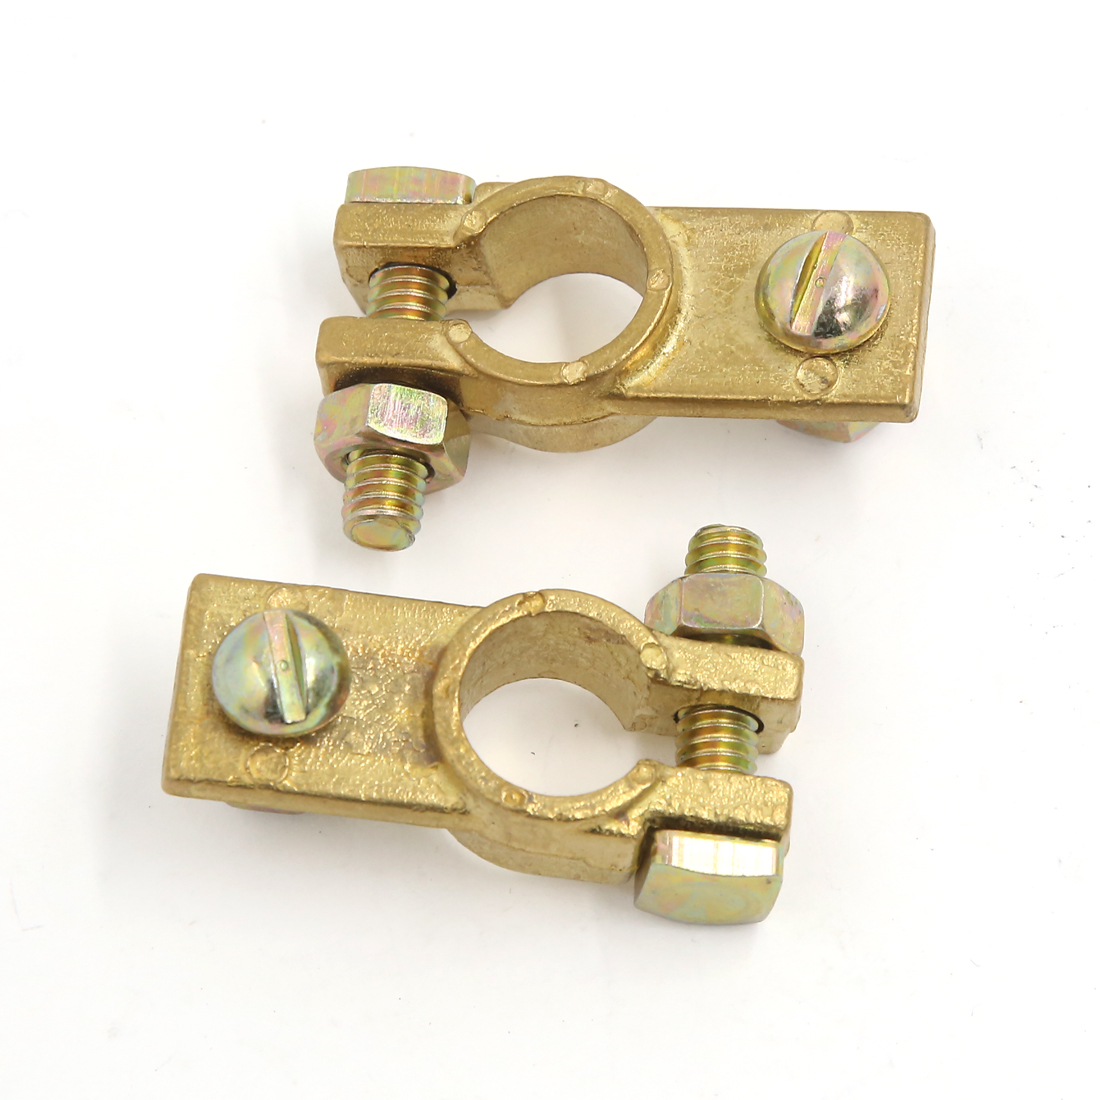 2Pcs Universal Copper Alloy Negative Port Battery Terminal Clamps Connector Gold Tone